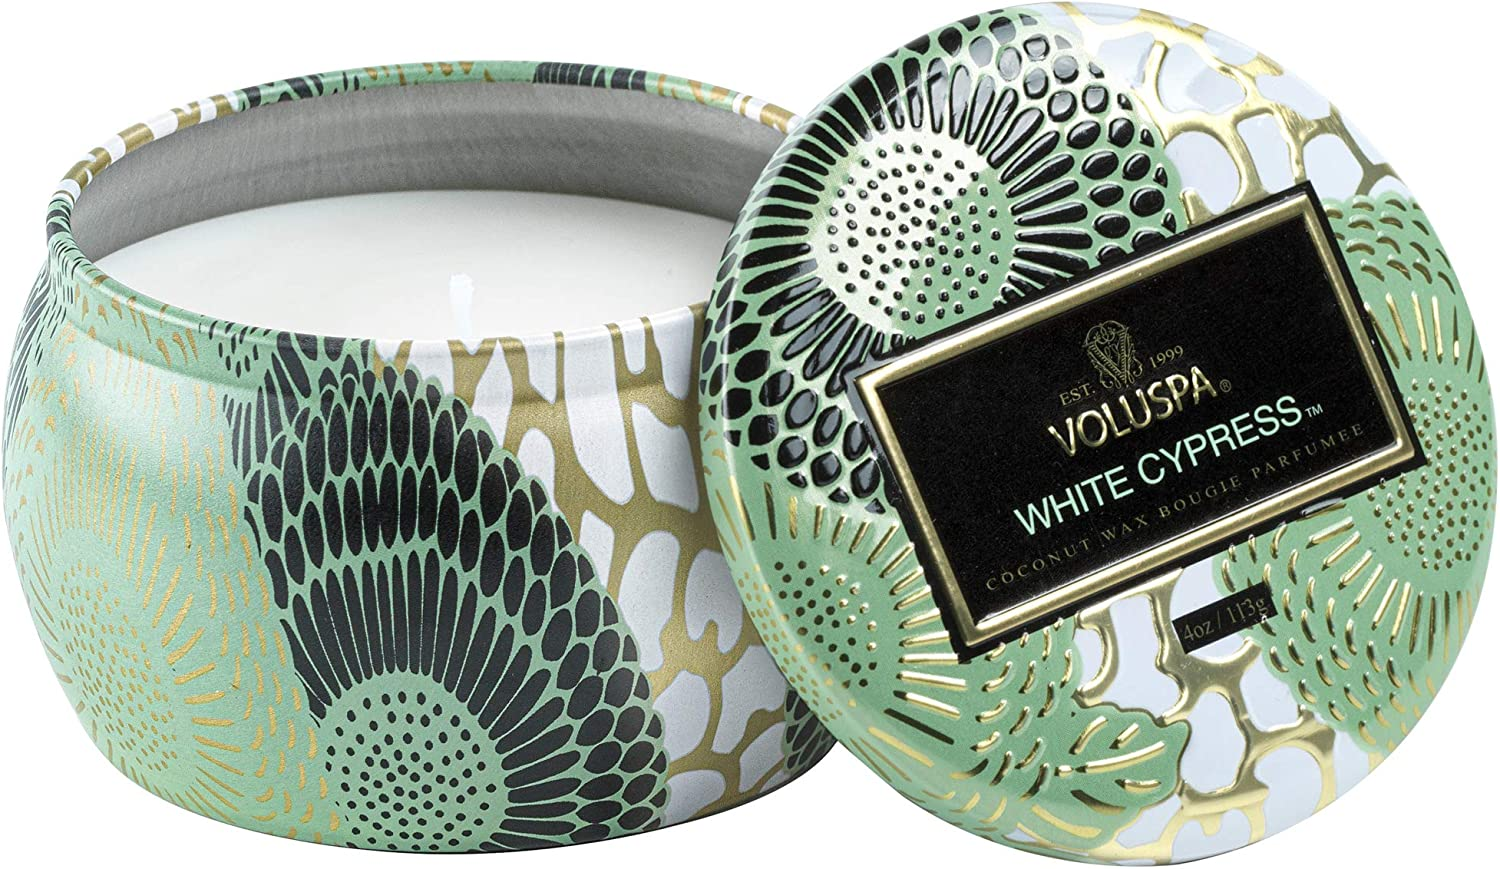 Voluspa White Cypress Store Candle Mini Tin Scent Japan Maker New Holiday 4 Oz.